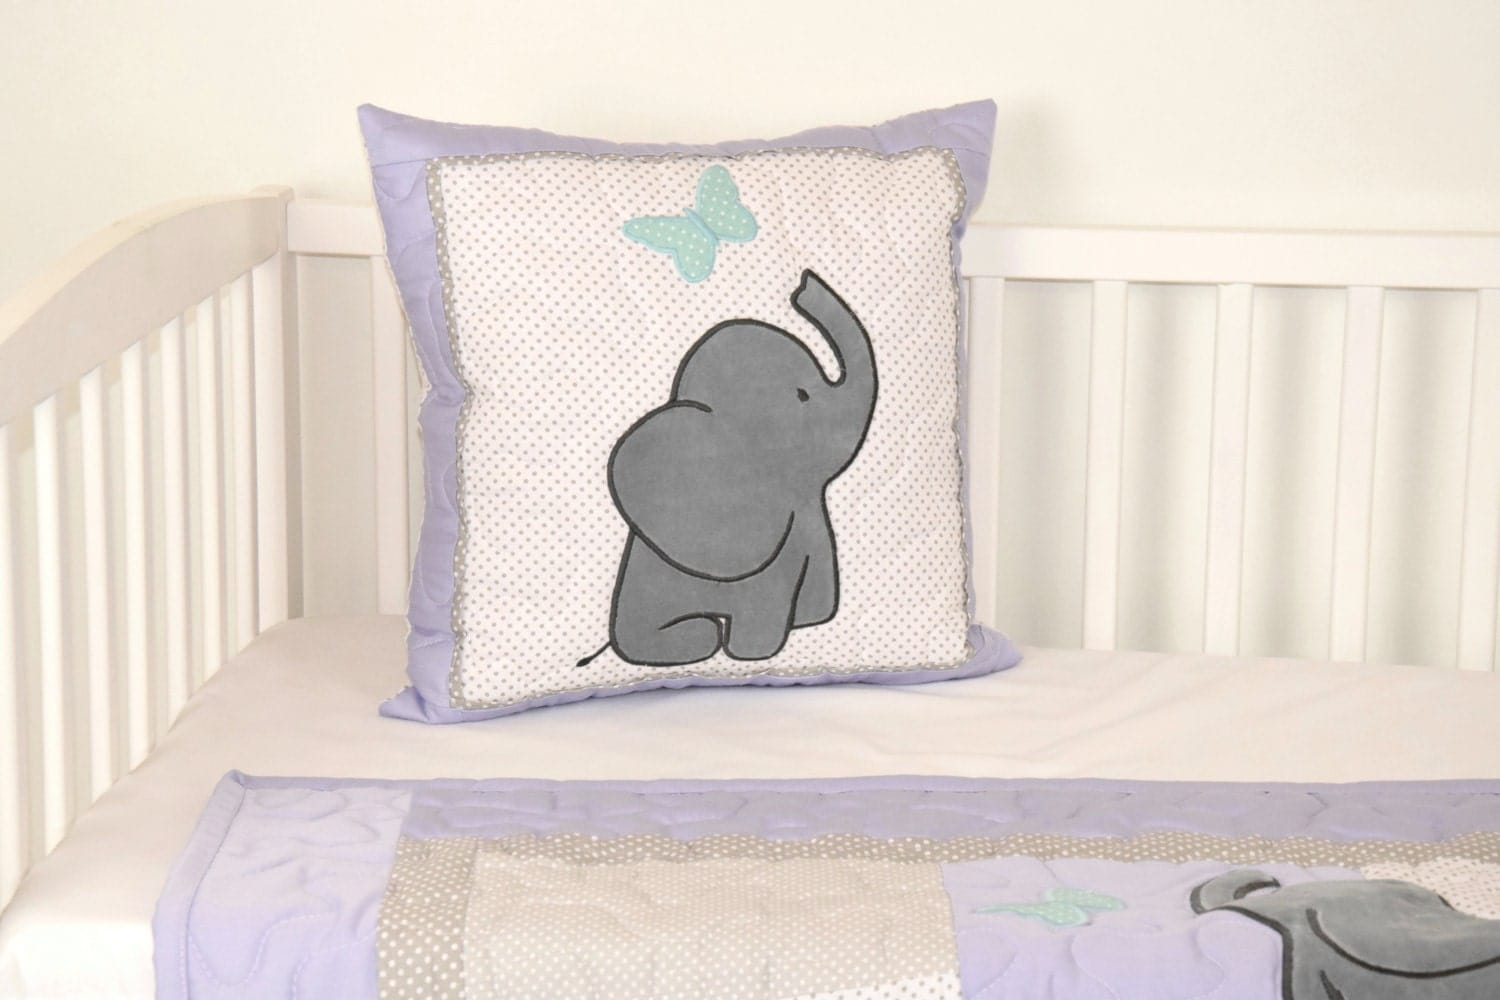 7 Inspiring Kid Room Color Options For Your Little Ones: Elephant Pillow Decorative Kids Pillow Boy Nursery Decor Teal